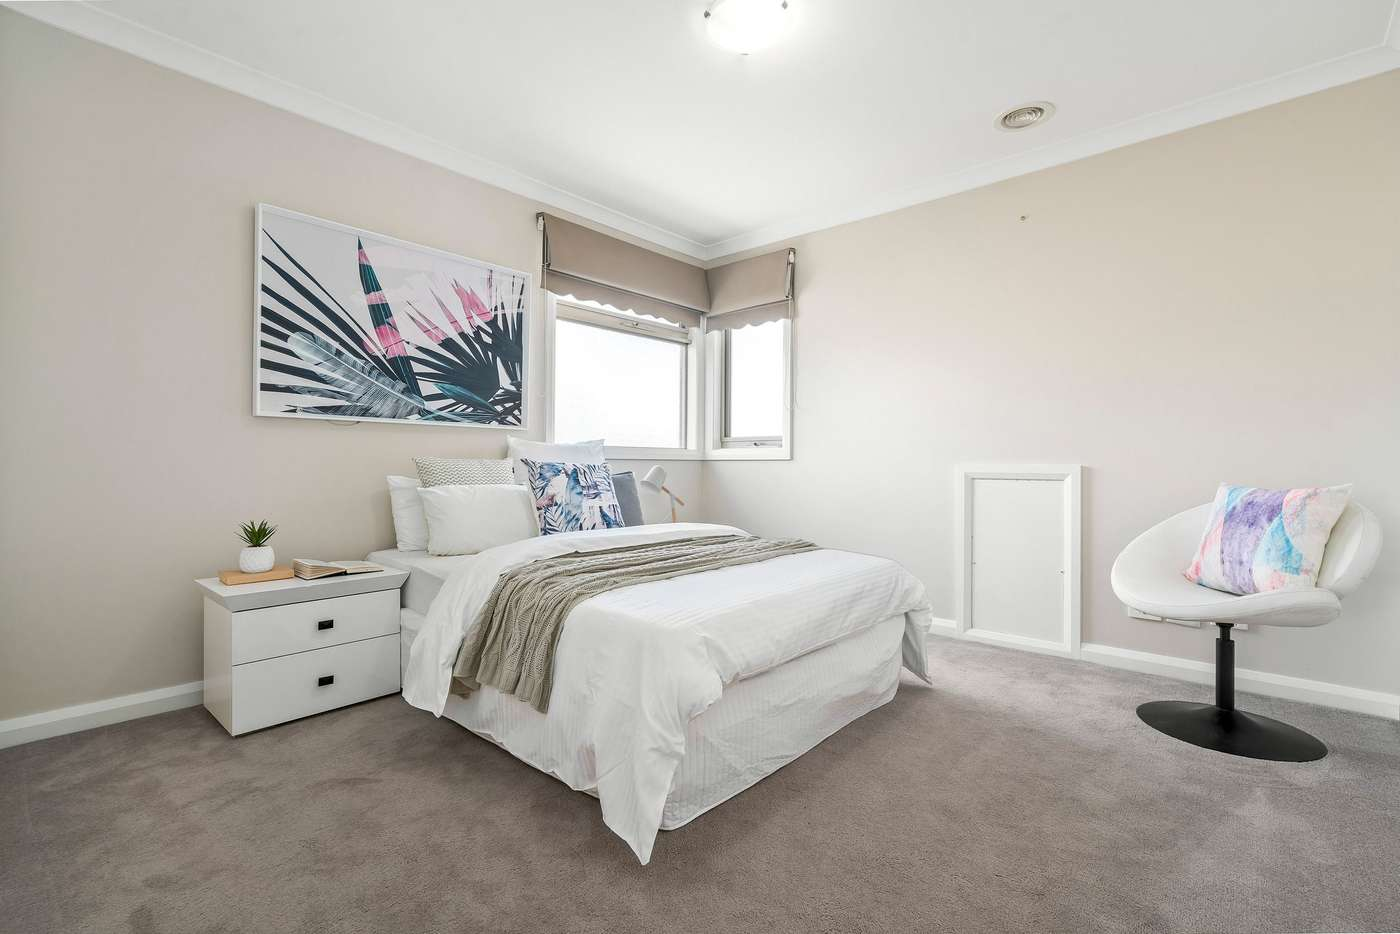 Sixth view of Homely townhouse listing, 1/74 King Street, Airport West VIC 3042